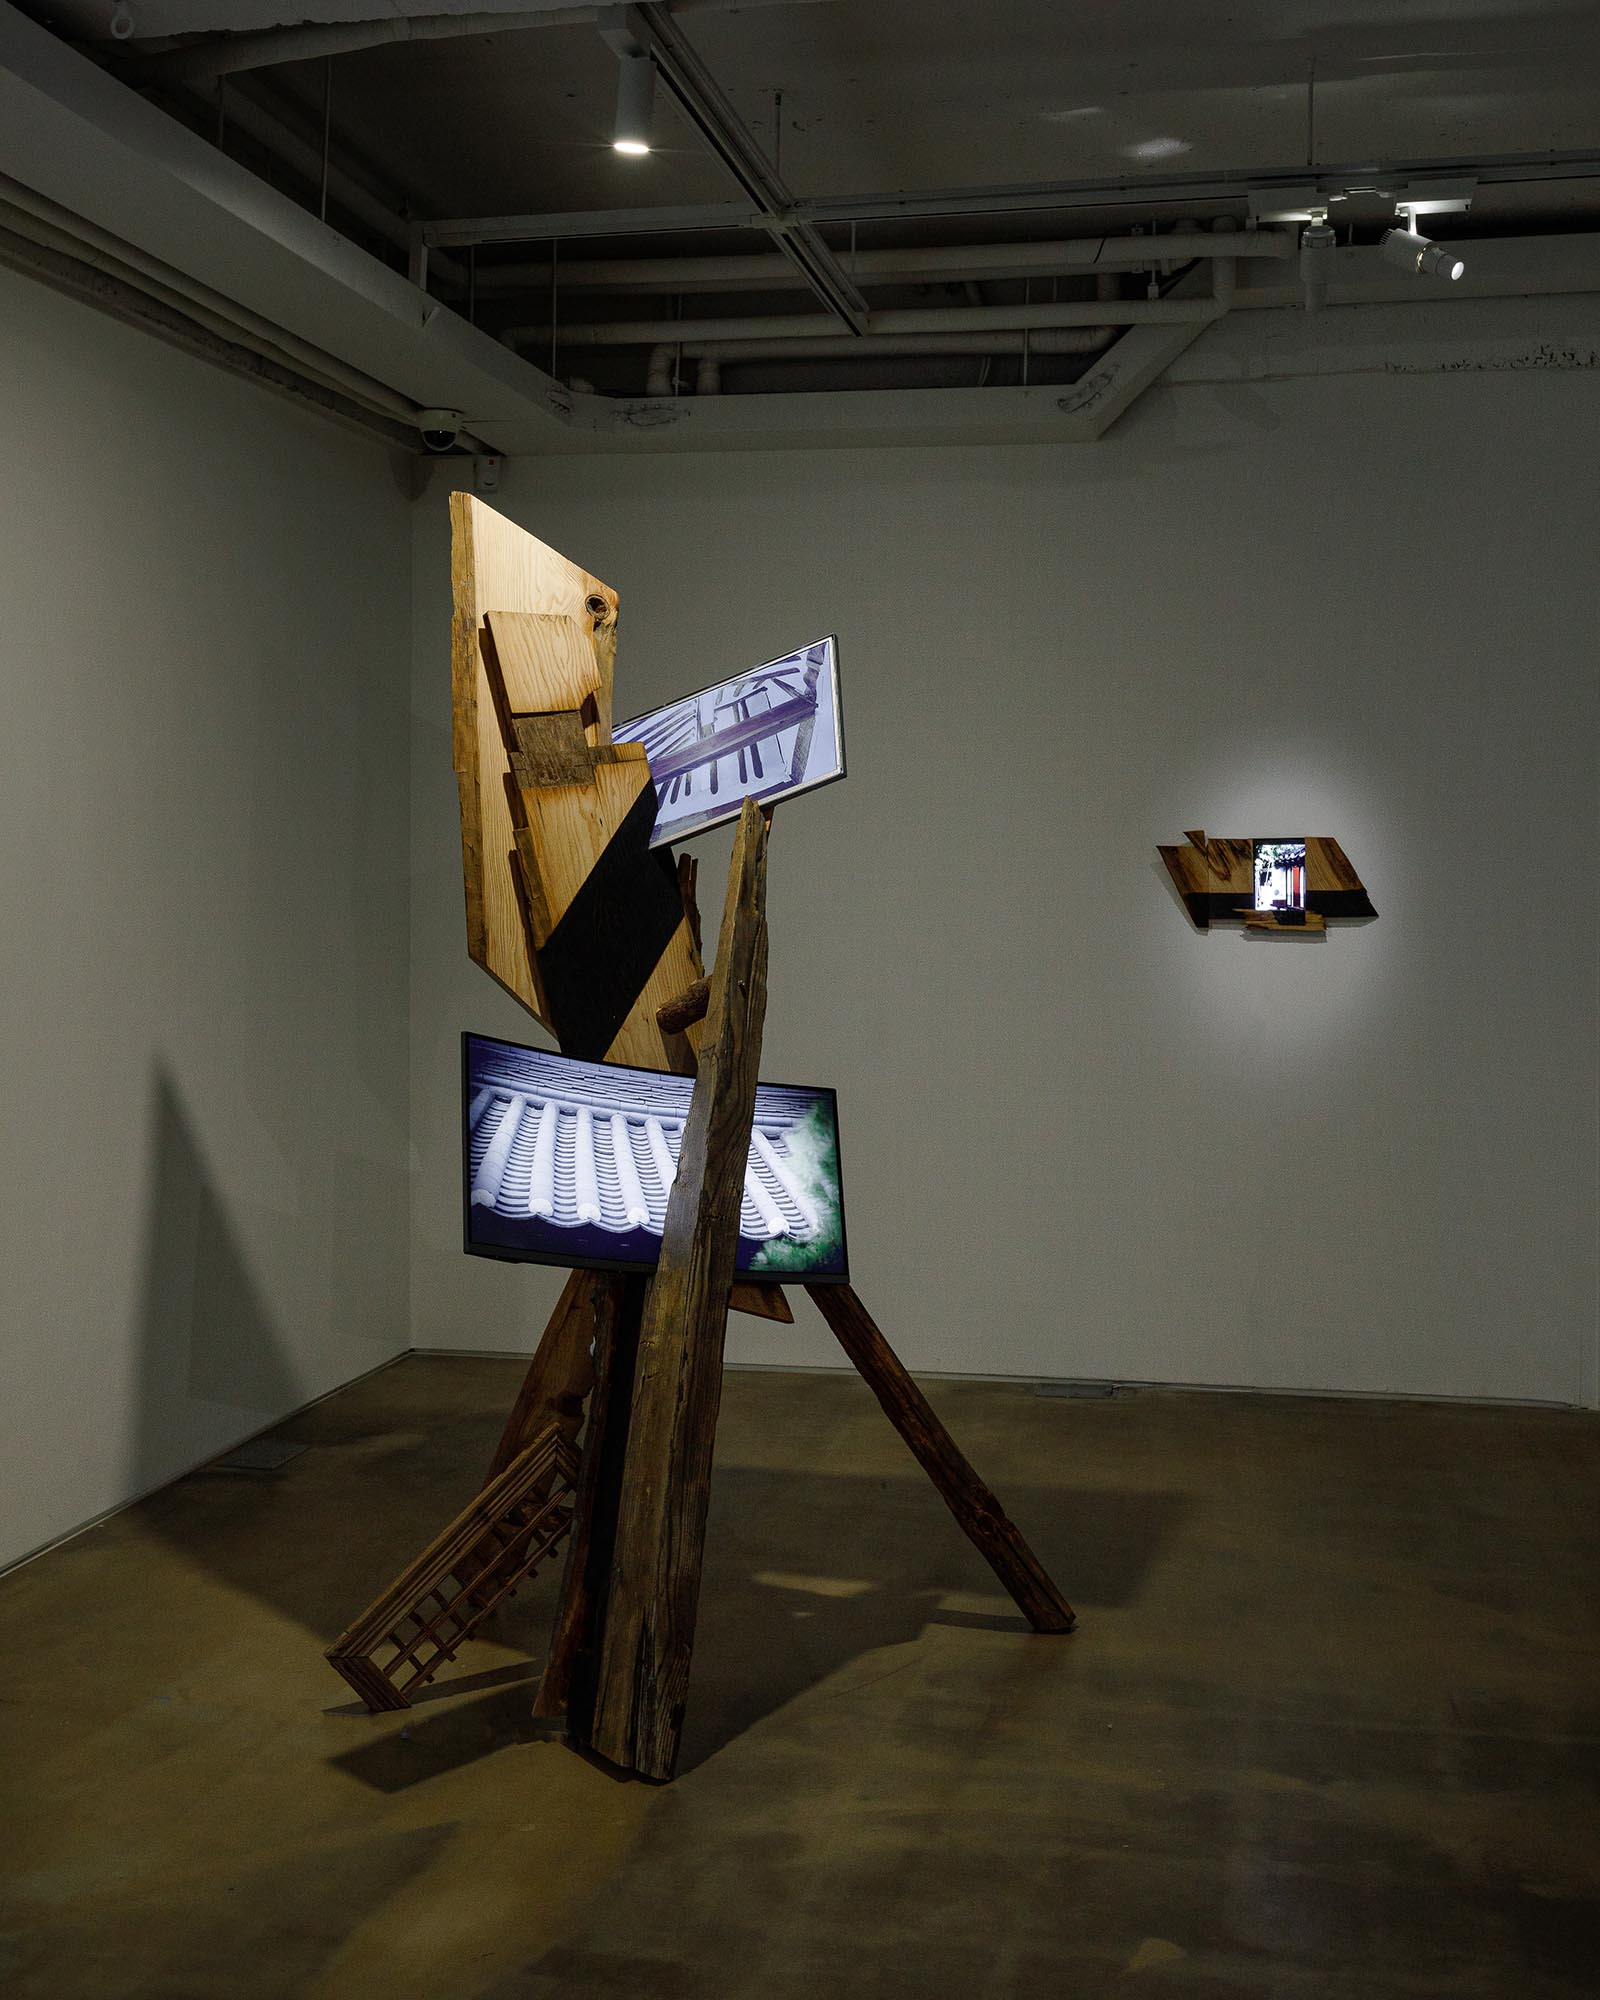 Installation view. Image courtesy of GUEM Min Jeong and SPACE SO.